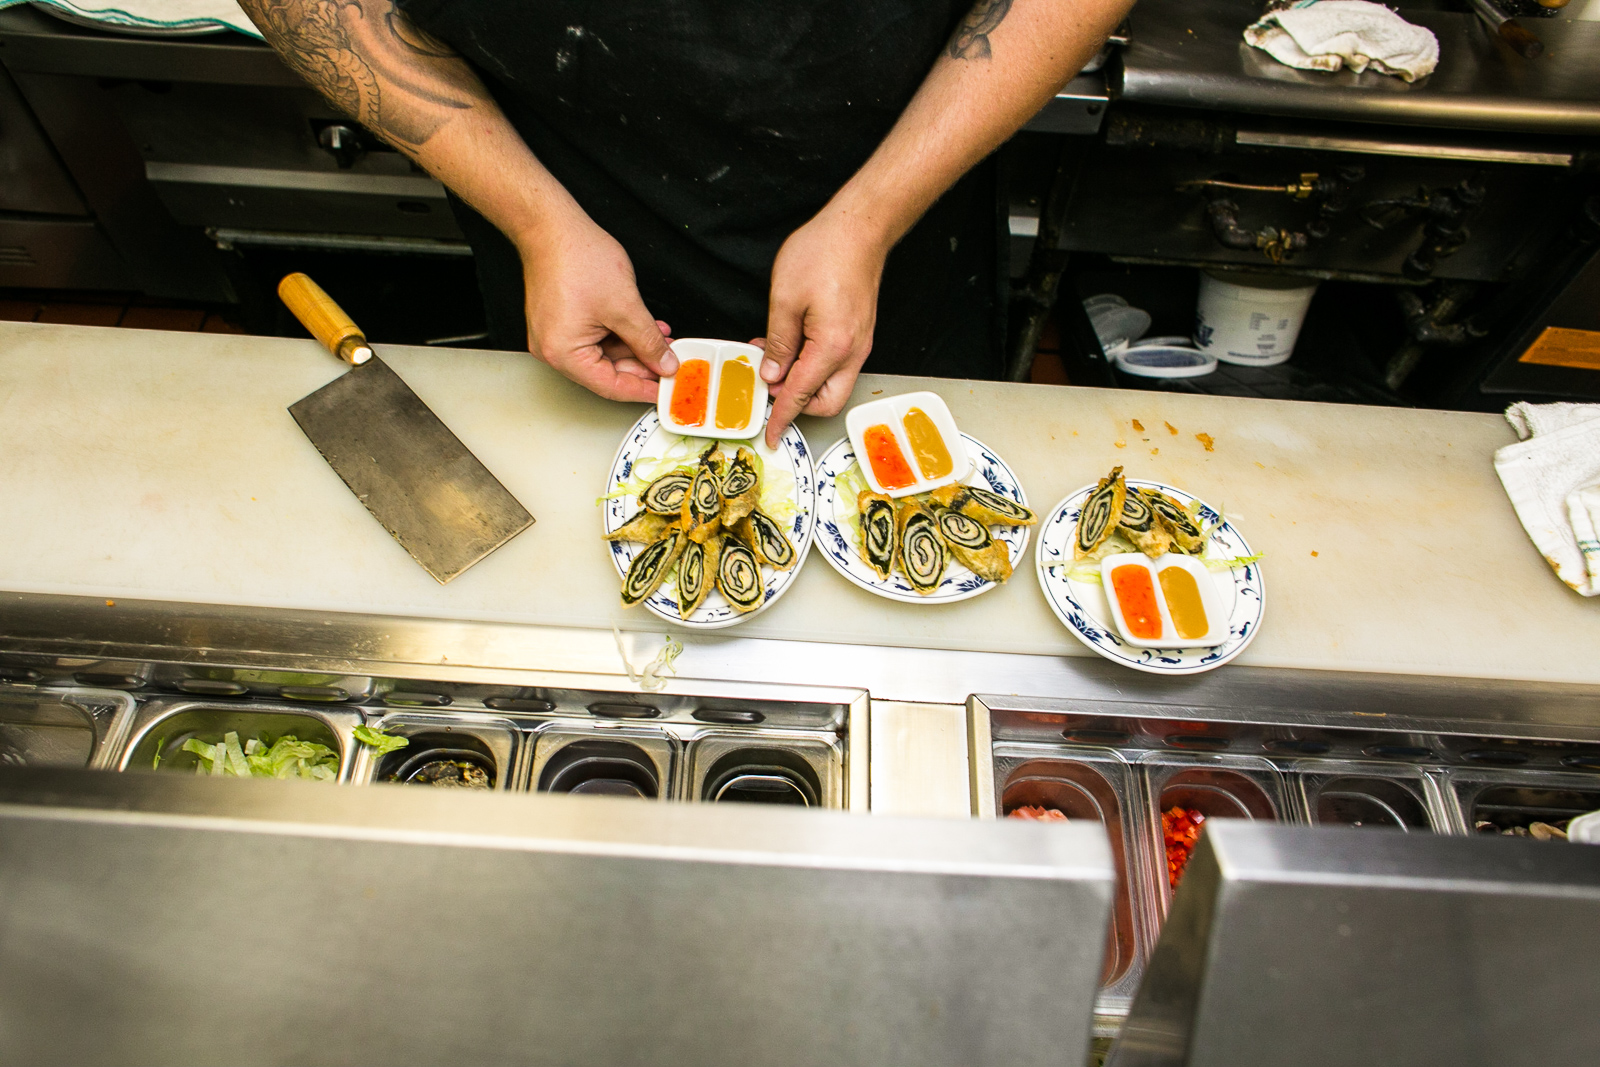 Chef Joe Kelly prepares Tricolored Shrimp Roll dishes at A Single Pebble Restaurant in Burlington, Vermont on Tuesday, September 13, 2016.